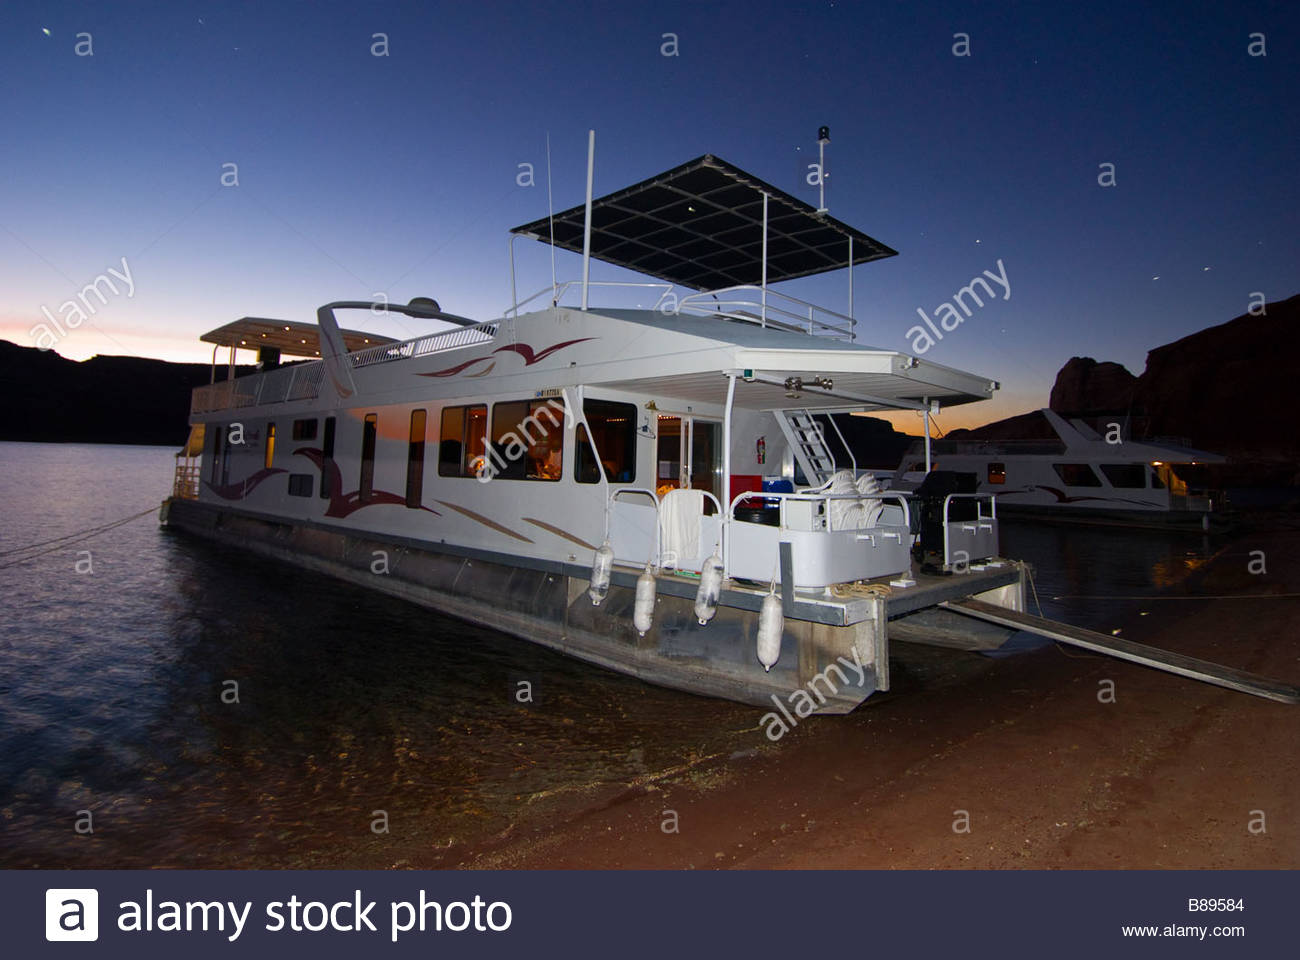 Luxury Houseboats Stock Photos Luxury Houseboats Stock